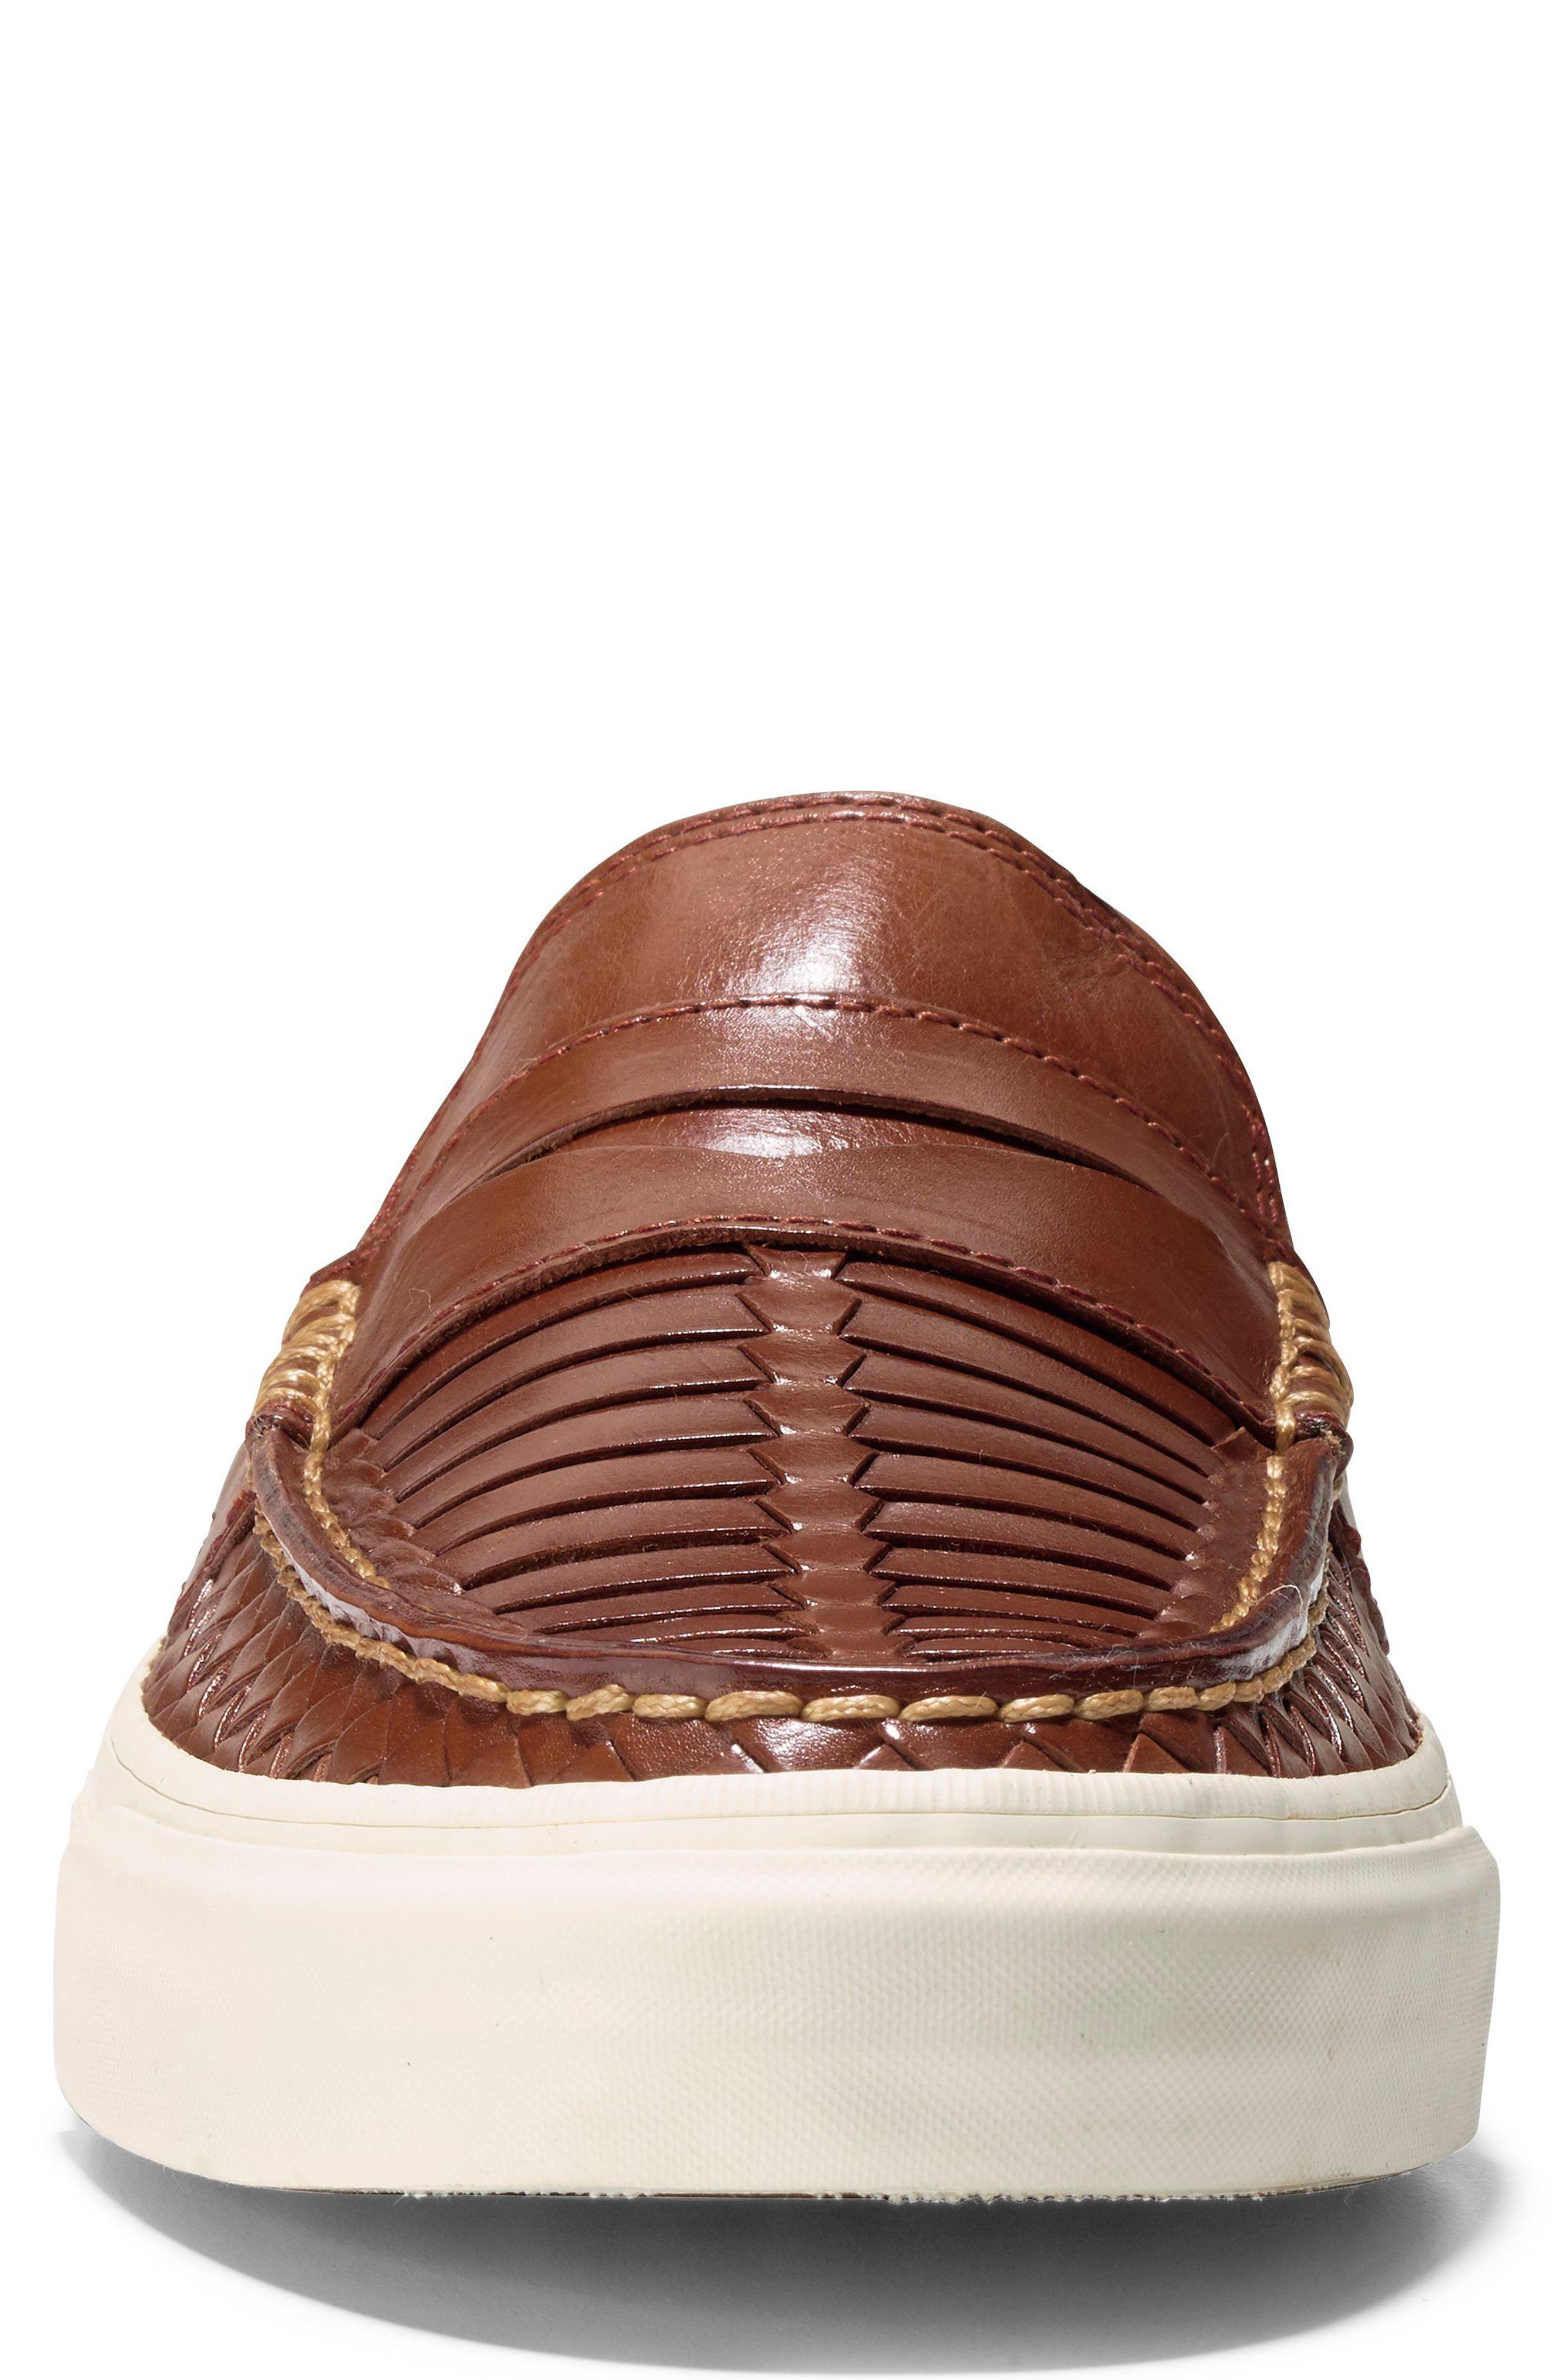 Pinch Weekend LX Huarache Loafer,                             Alternate thumbnail 11, color,